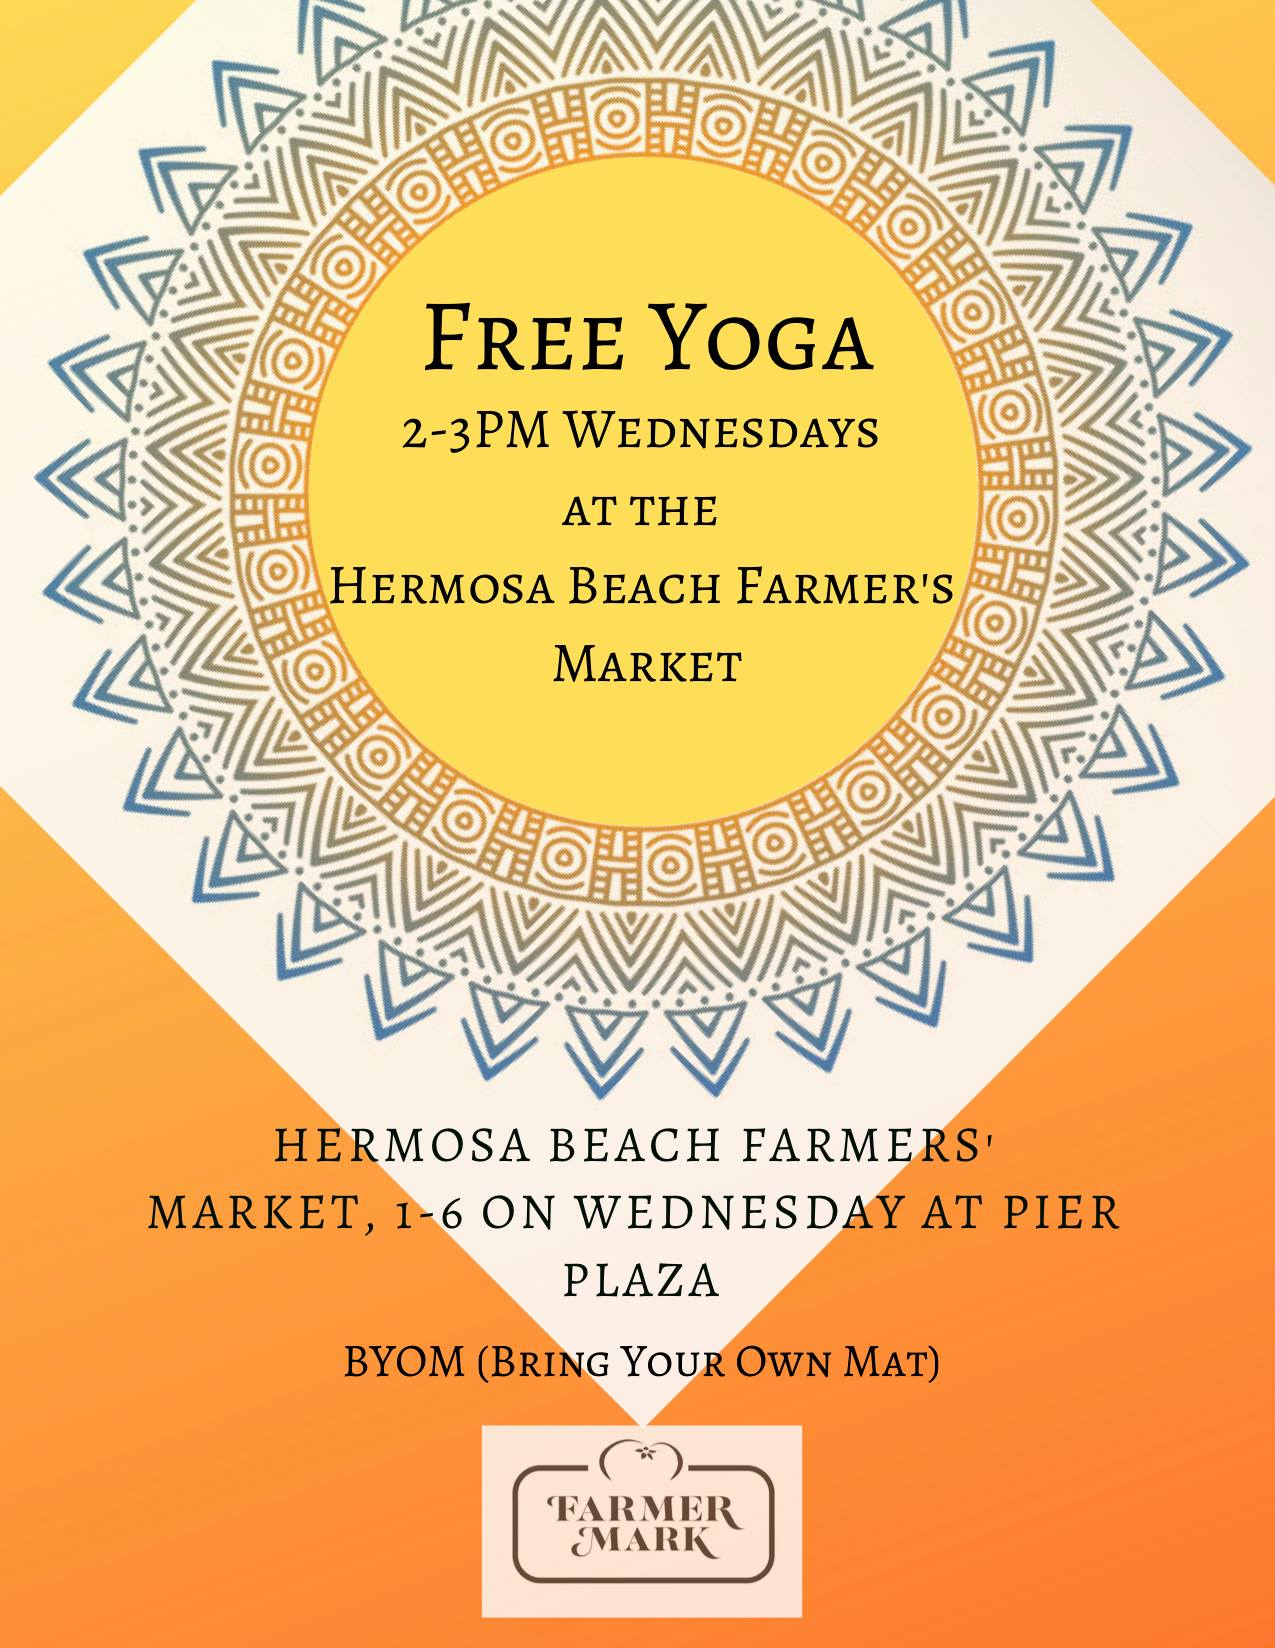 FREE Yoga at Hermosa Beach's Pier Plaza Farmer's Market